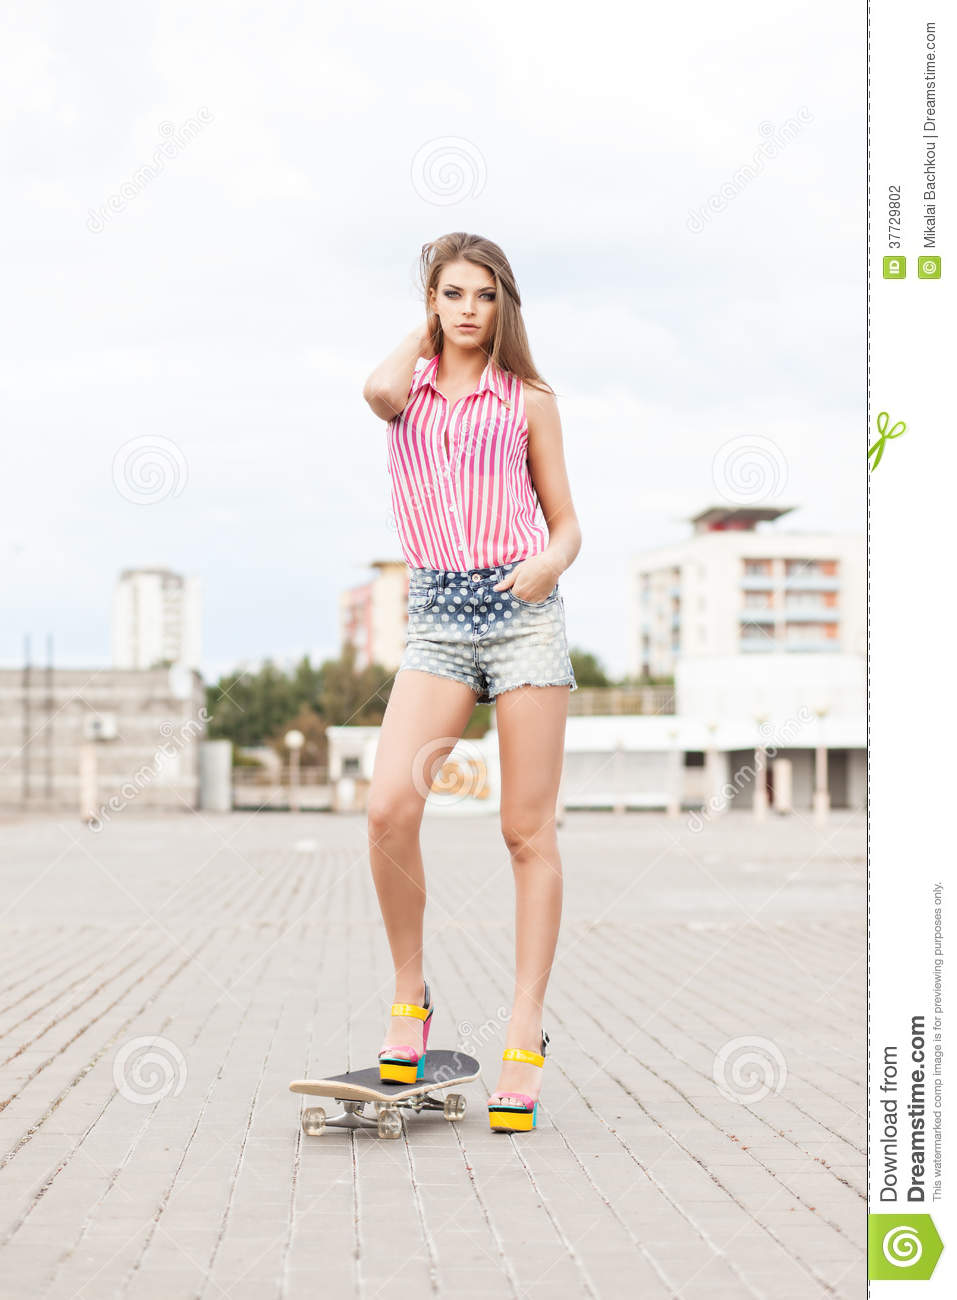 Beautiful Lady In Short Jeans Shorts Stands On Skateboard Stock ...